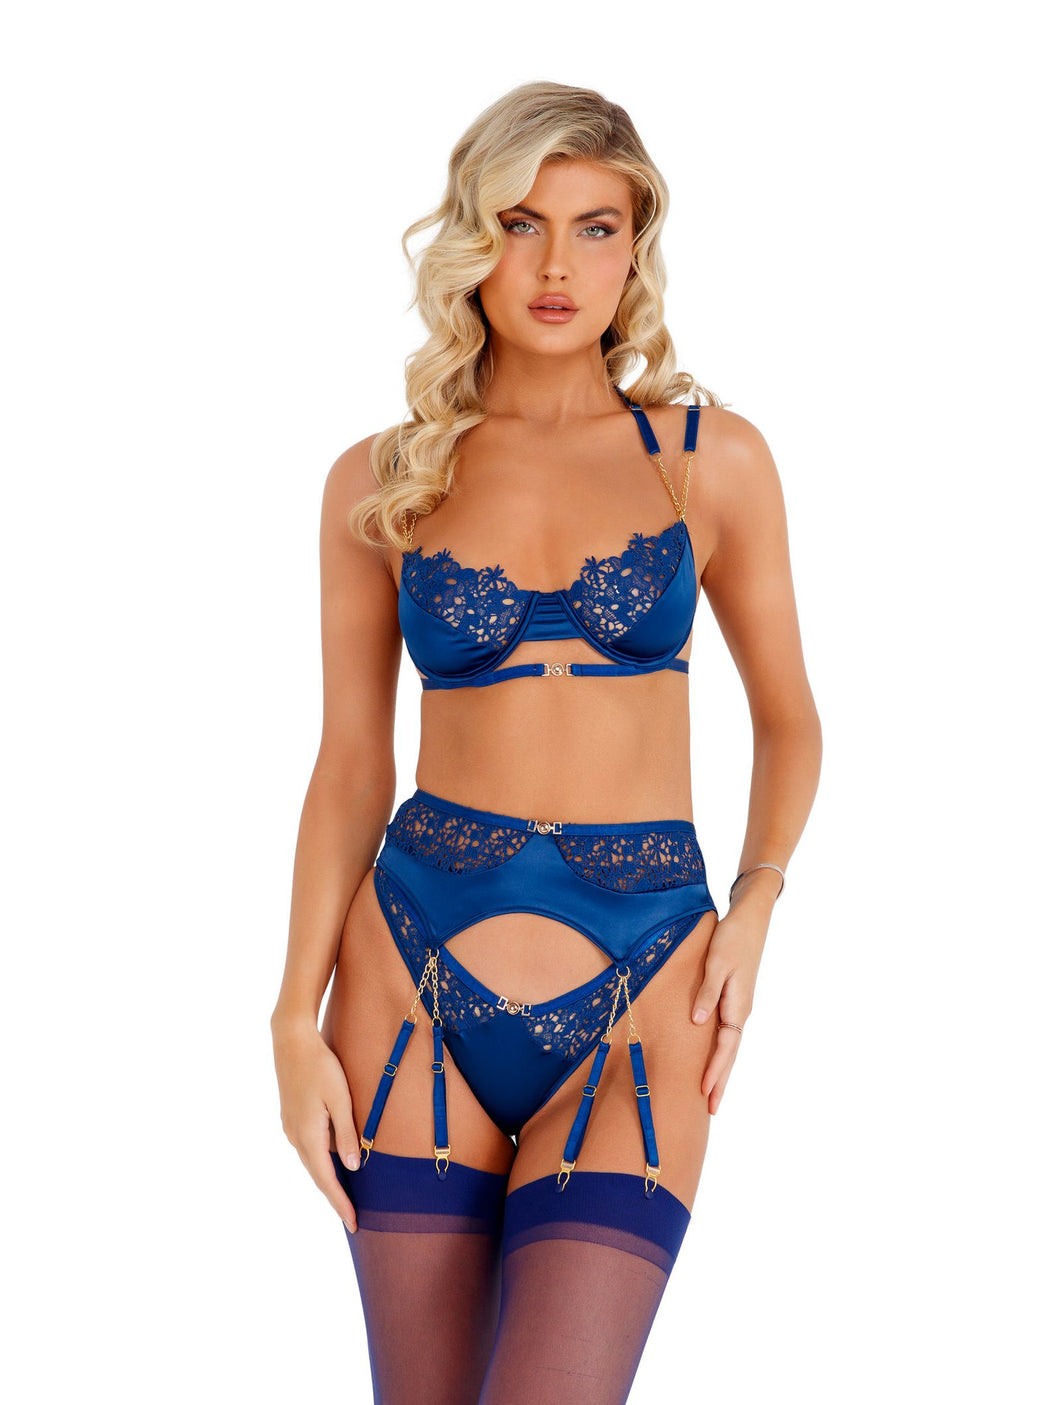 Navy Blue Embroidery Lace Garters & Satin Bra Set